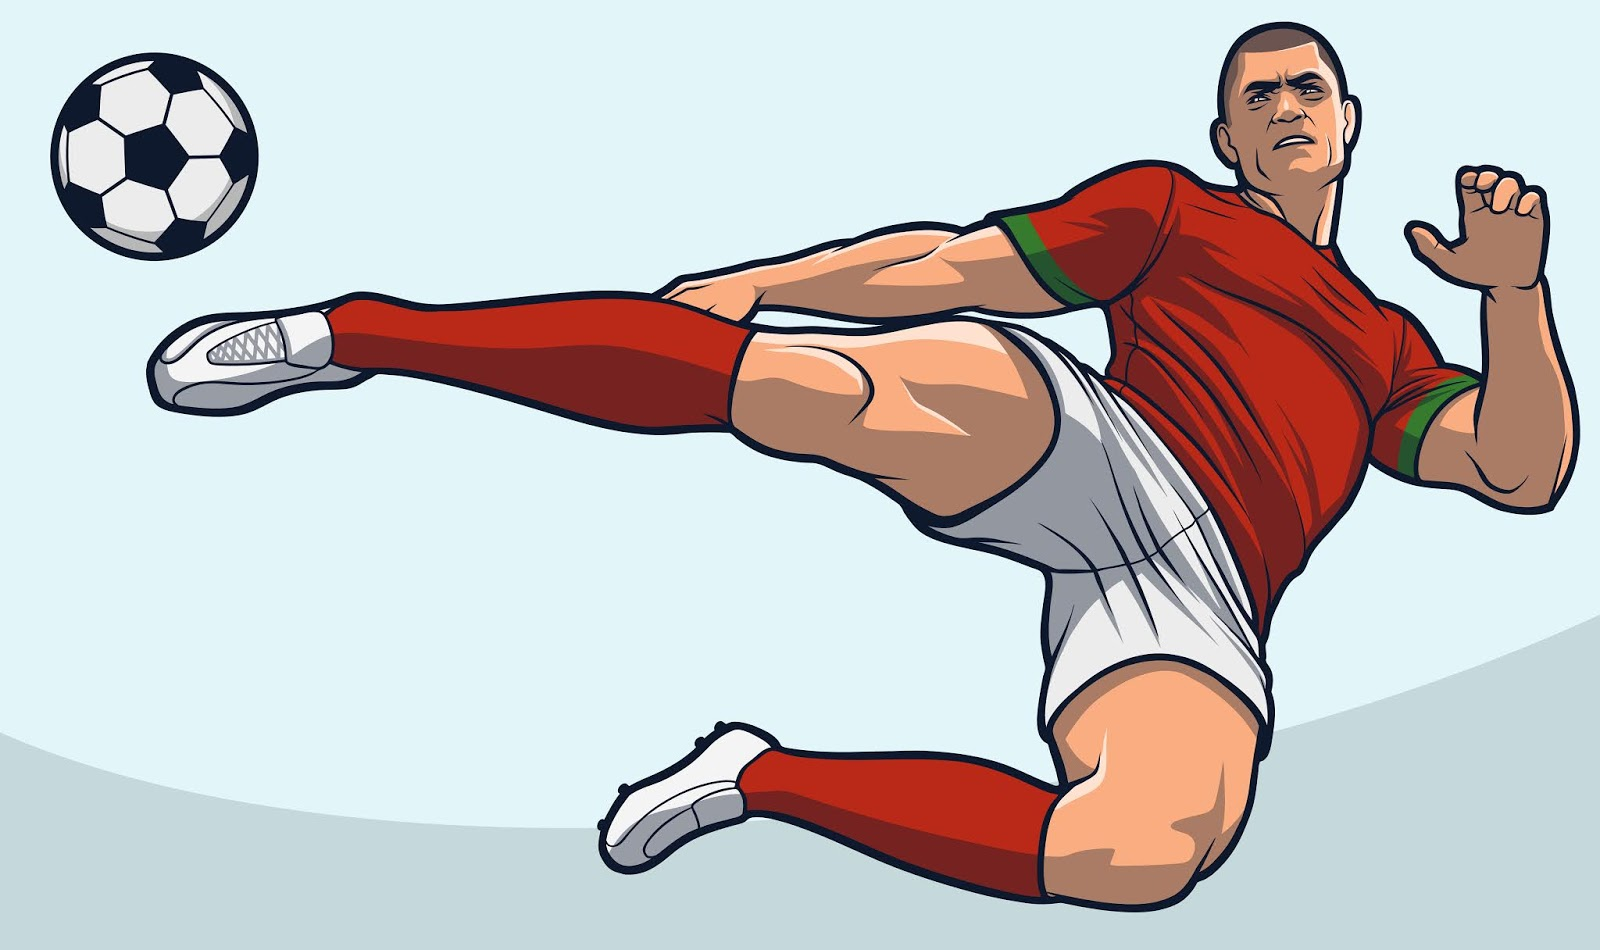 Soccer Player Scissor Kick Free Download Vector CDR, AI, EPS and PNG Formats